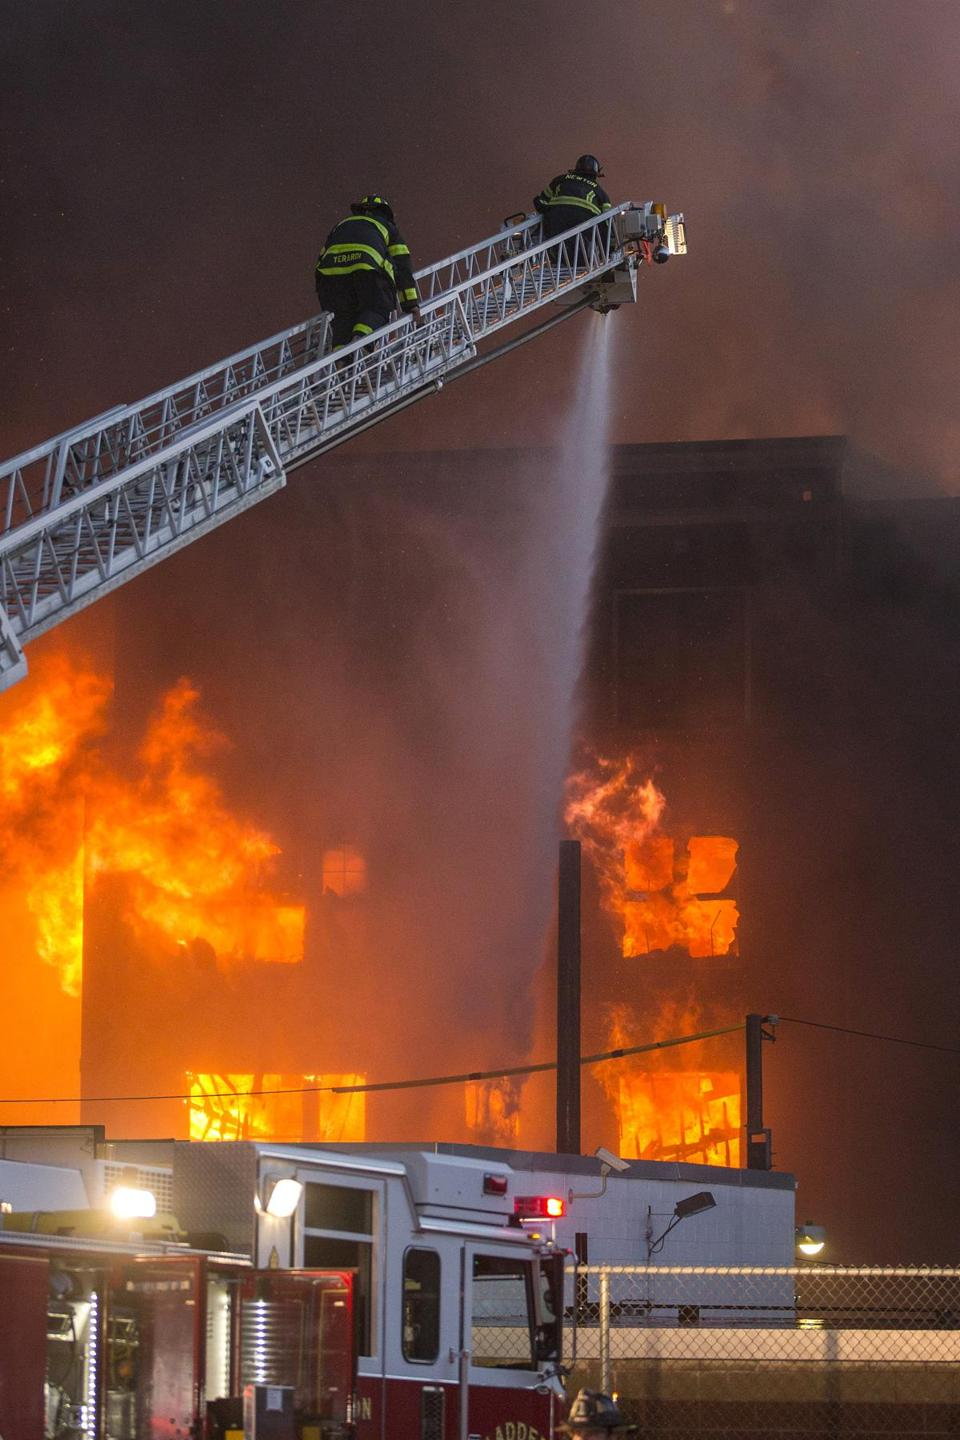 Firefighters put water on a fully involved building at the scene of an 8 alarm fire in Waltham on Sunday, July 23, 2017 that involved multiple structures. (Scott Eisen for The Boston Globe)